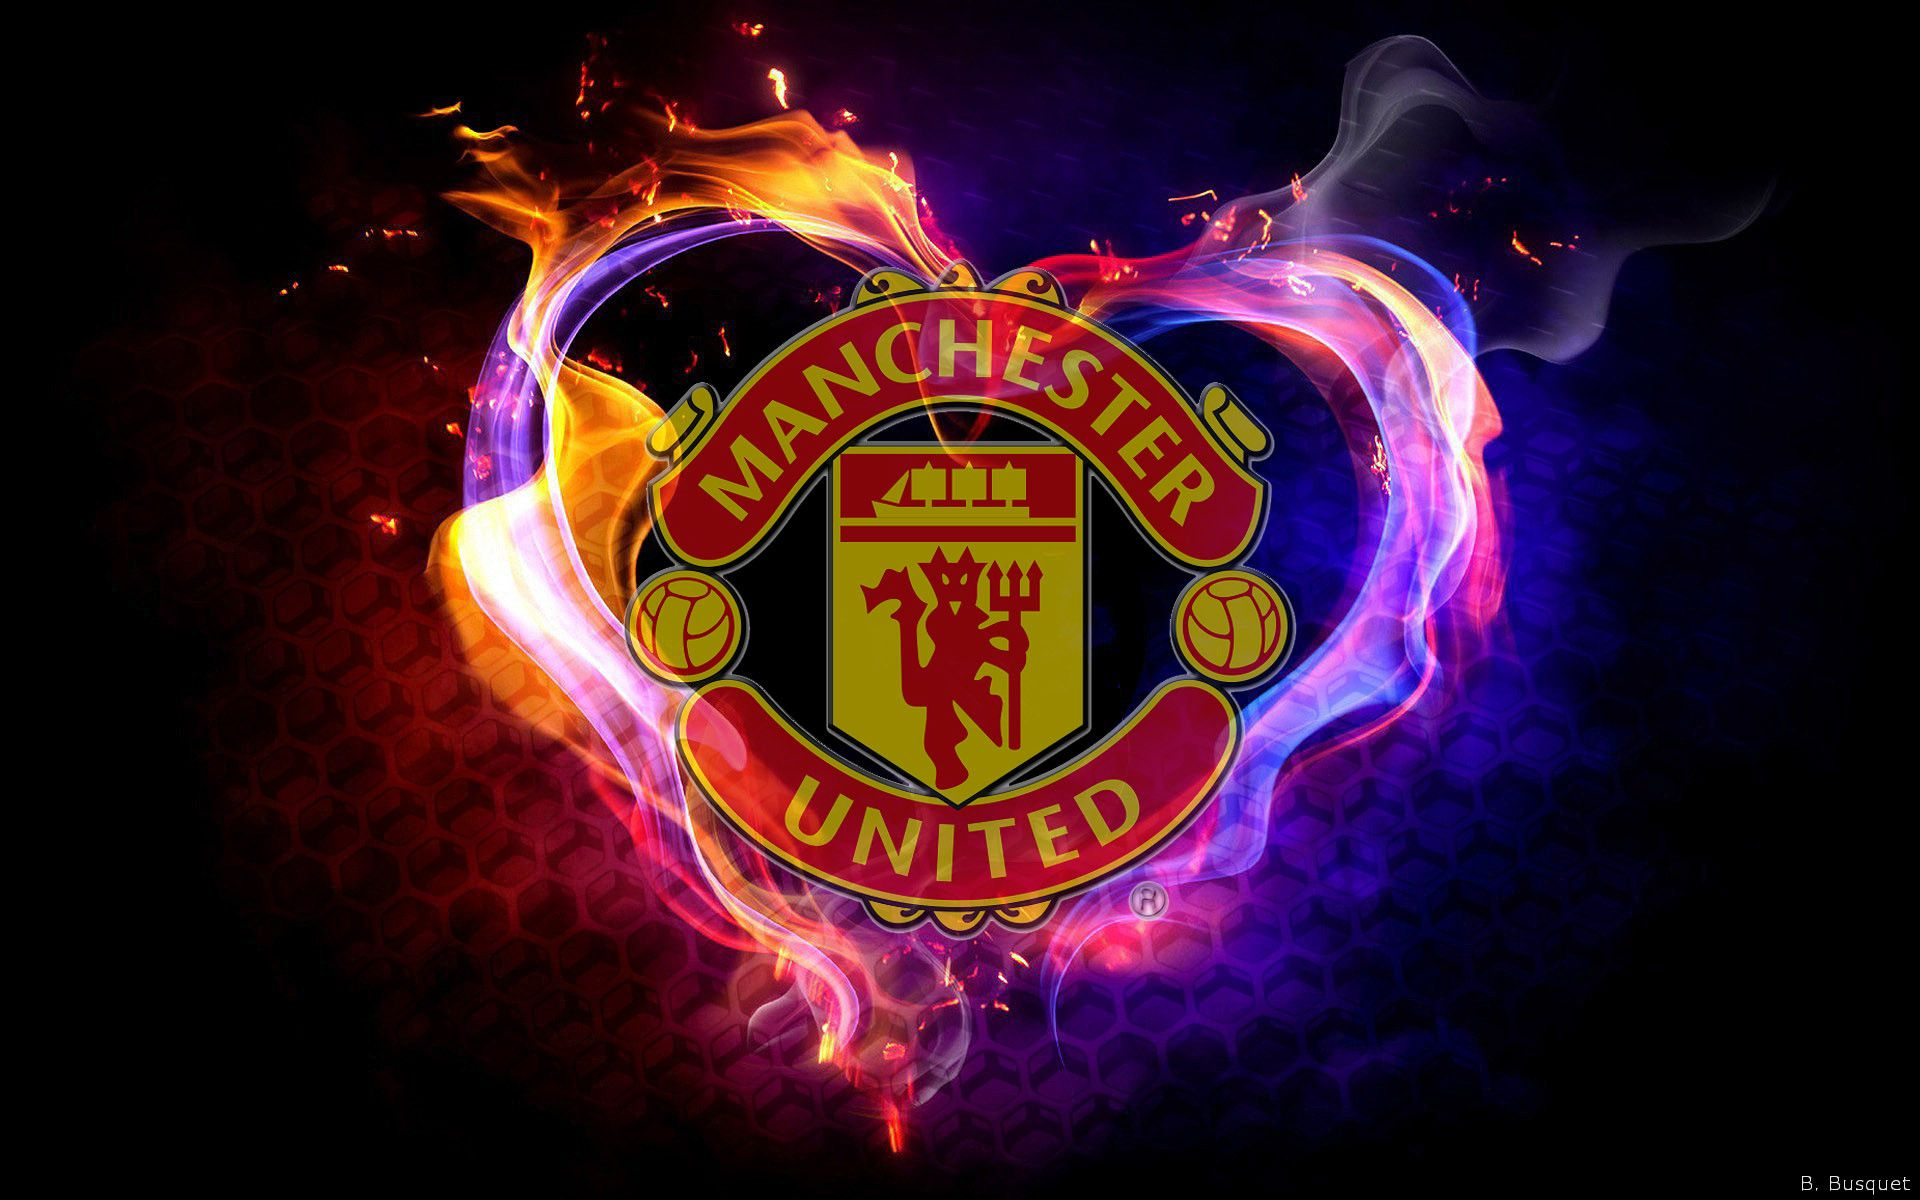 manchester united logo wallpapers top free manchester united logo backgrounds wallpaperaccess manchester united logo wallpapers top